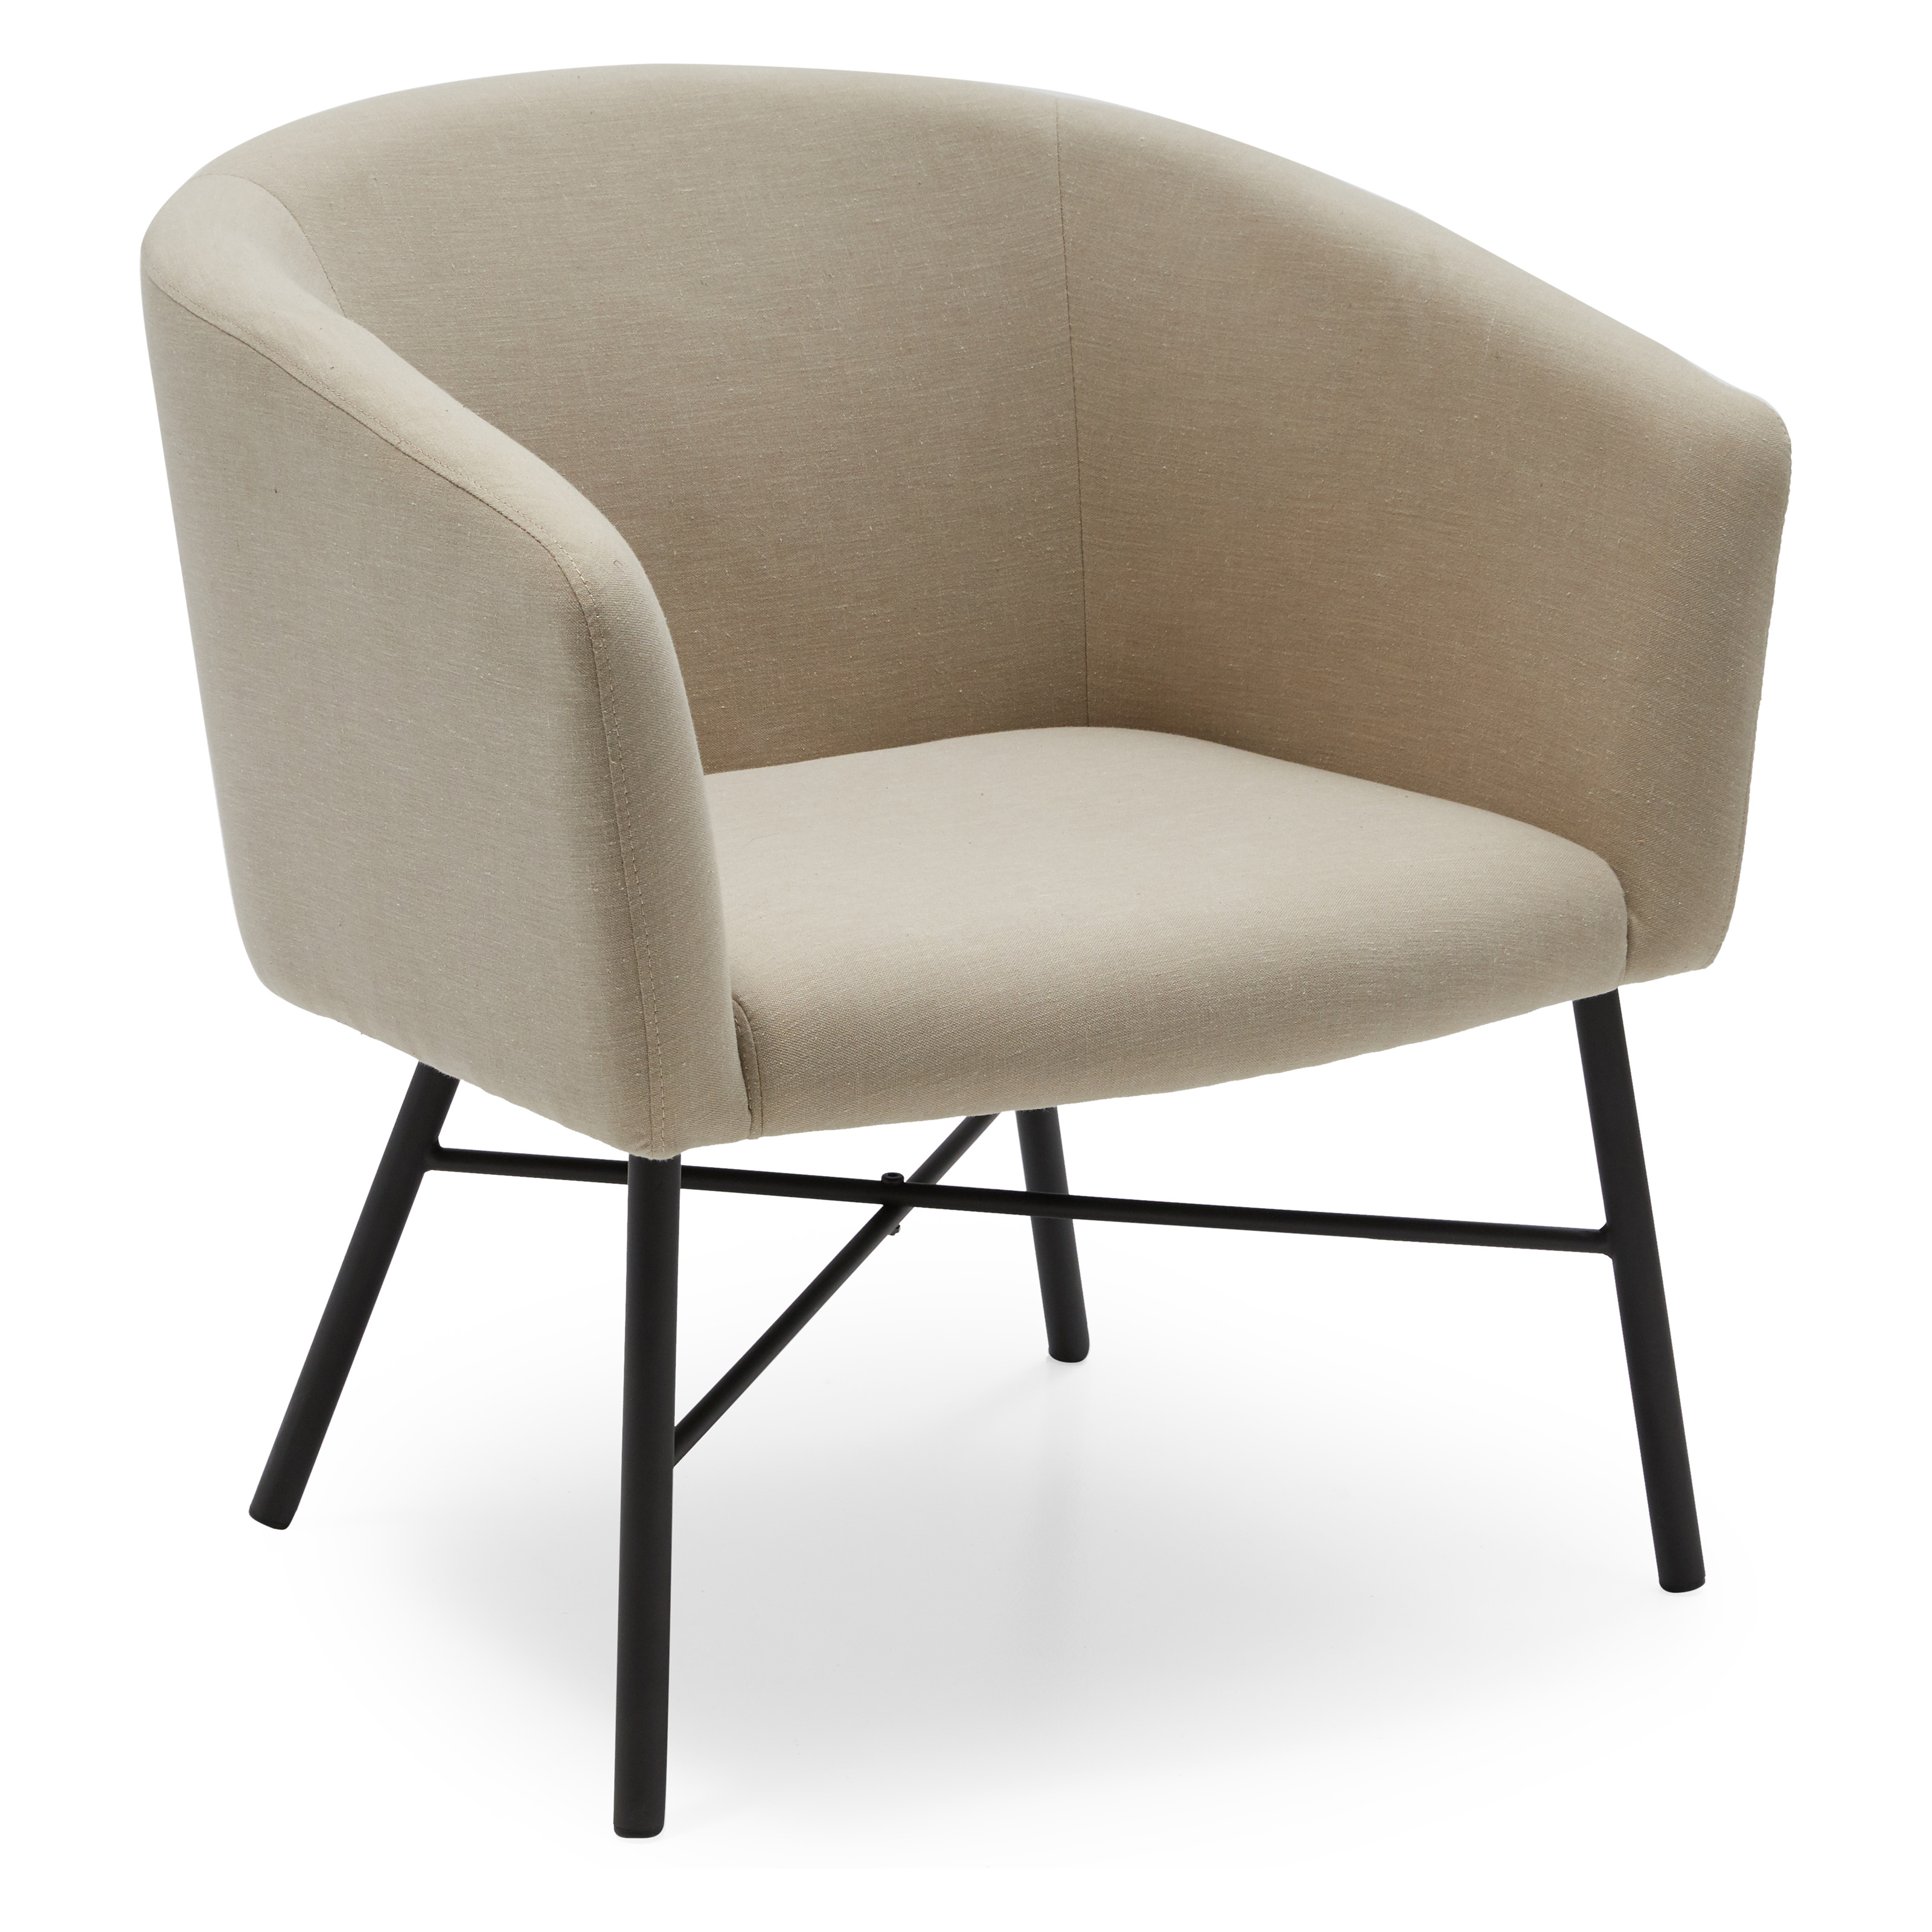 MoDRN Industrial Zoe Lounge Chair, Multiple Colors